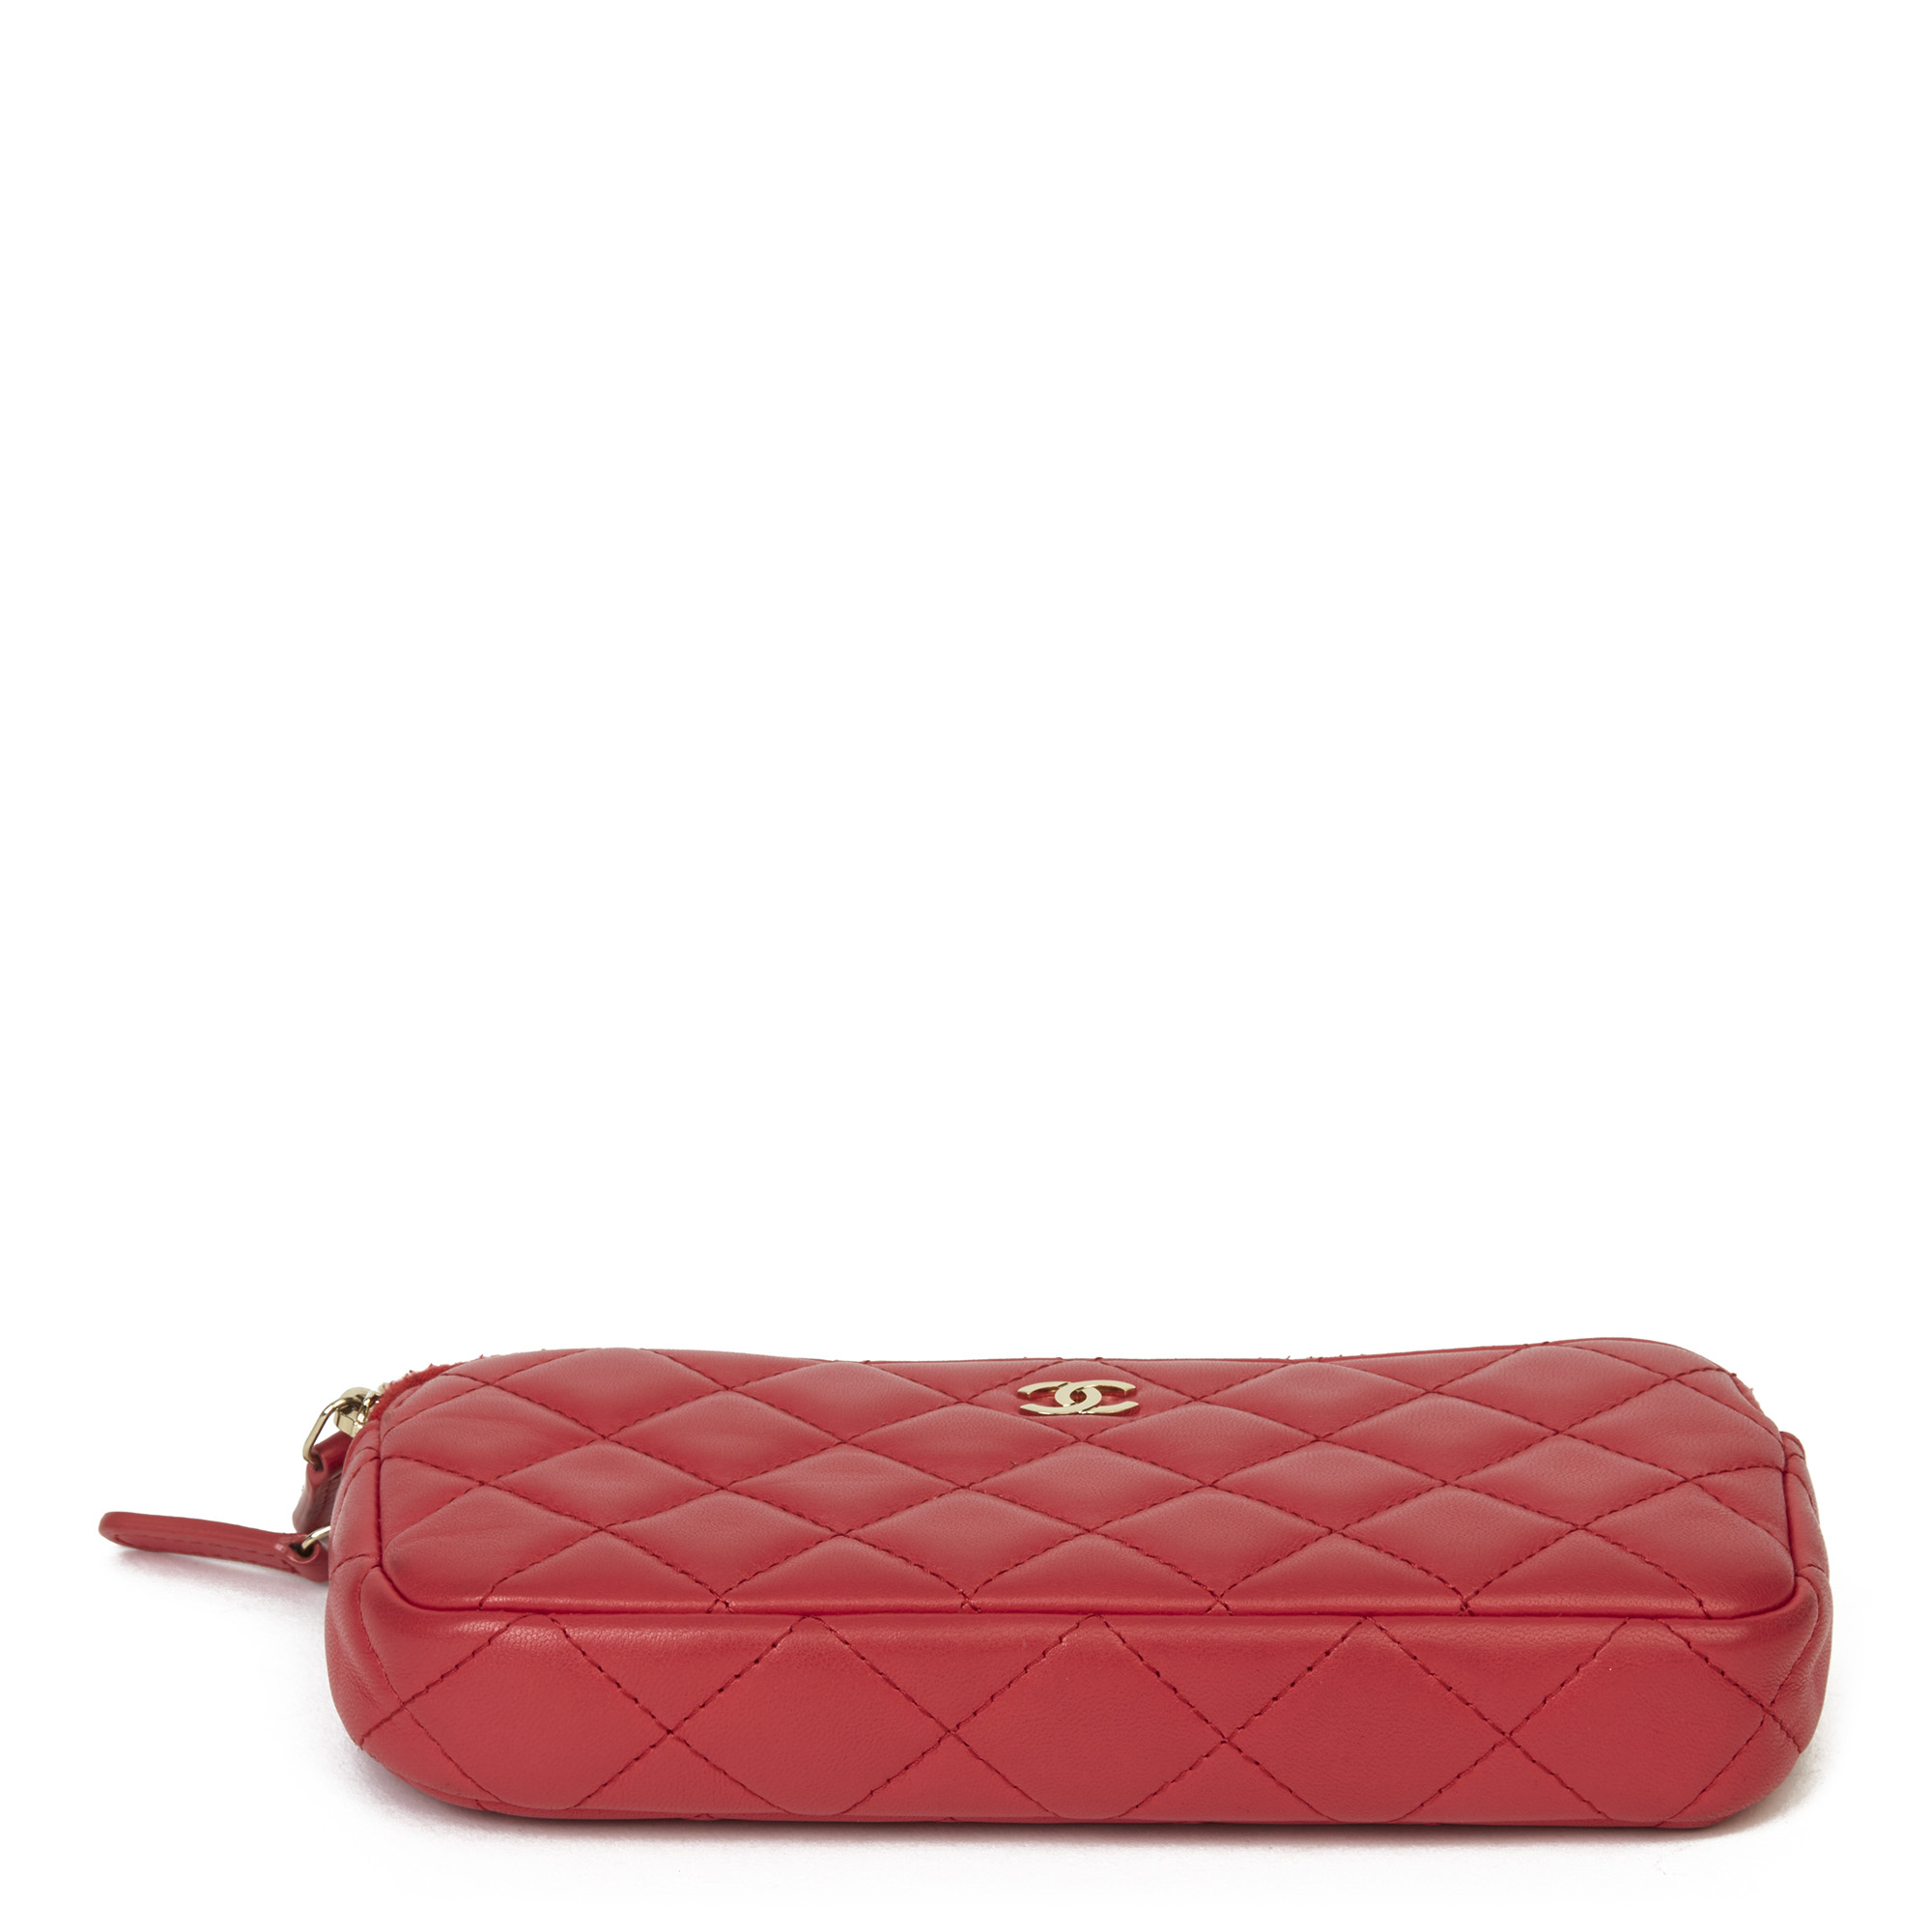 Chanel Red Quilted Lambskin Double Zip Wallet-on-Chain WOC - Image 9 of 11